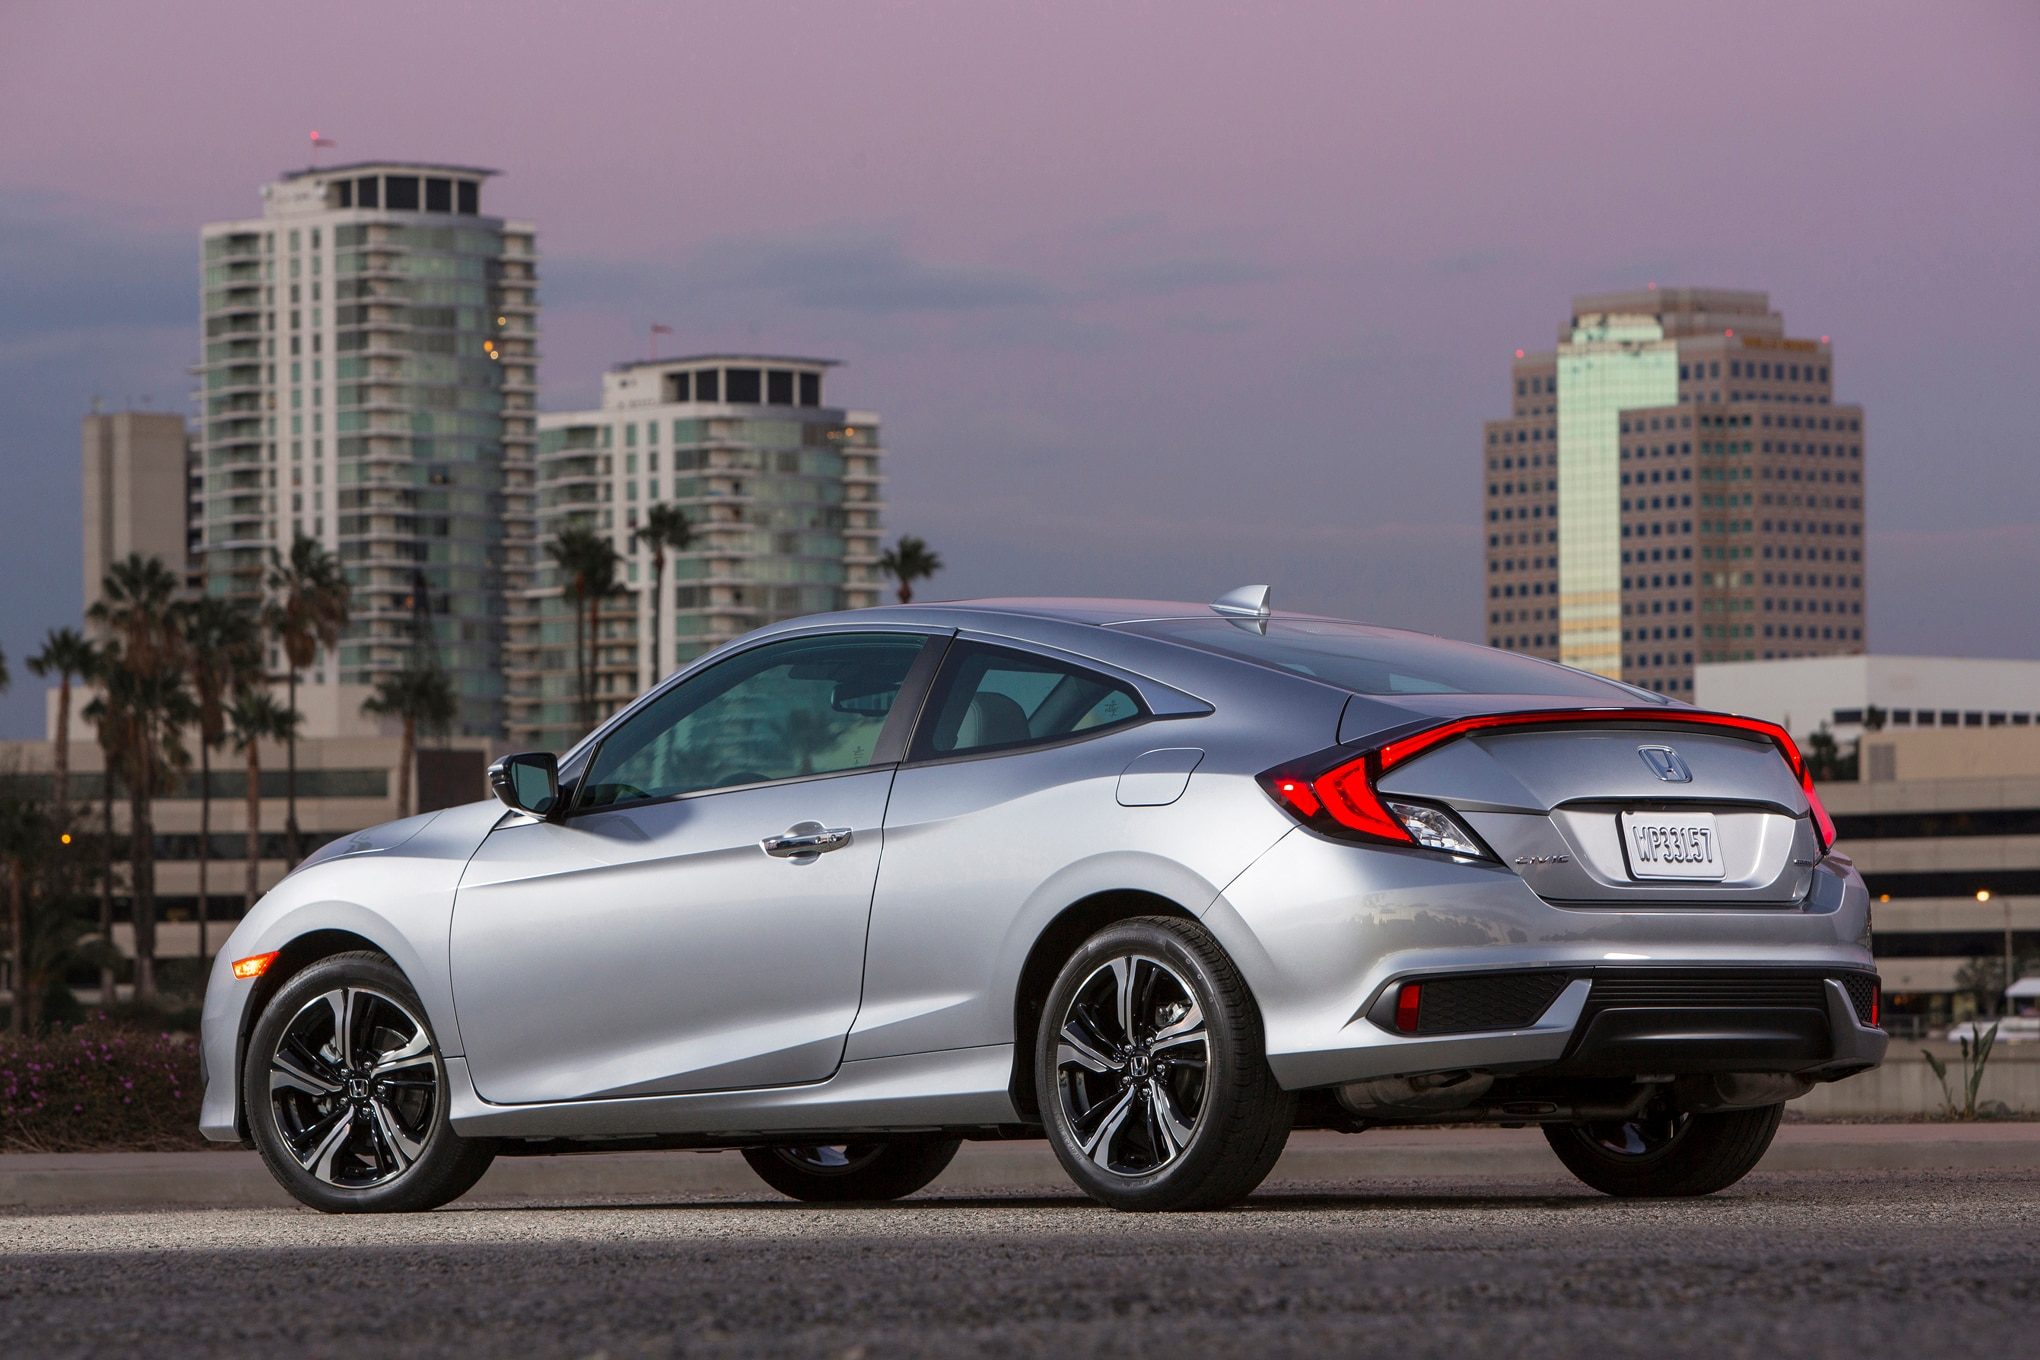 2016 honda civic coupe review automobile magazine for 2016 honda civic ex t review